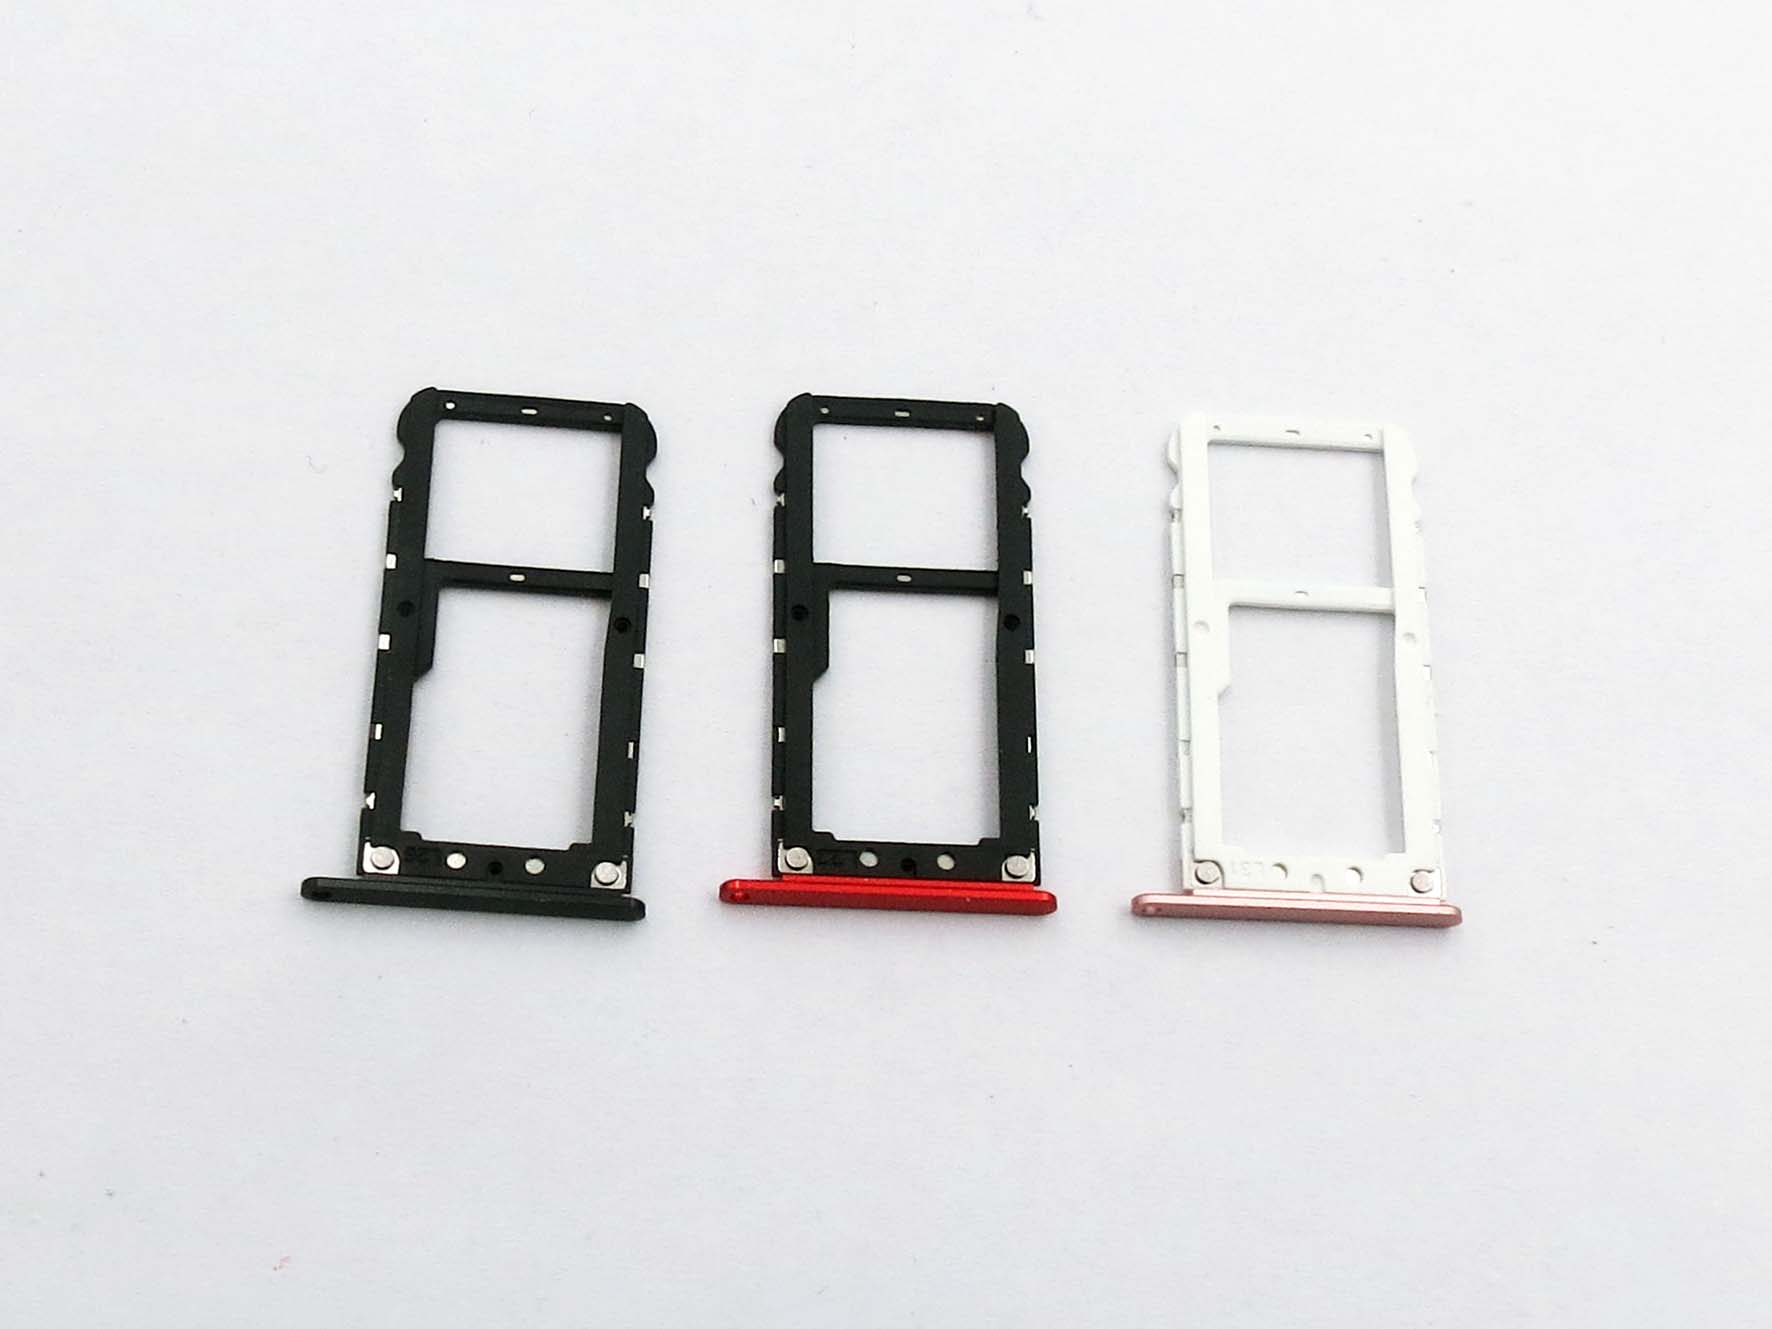 Original Dual Sim Card Slot Tray Holder for xiaomi 5z- Black&Red&Pink&Gold